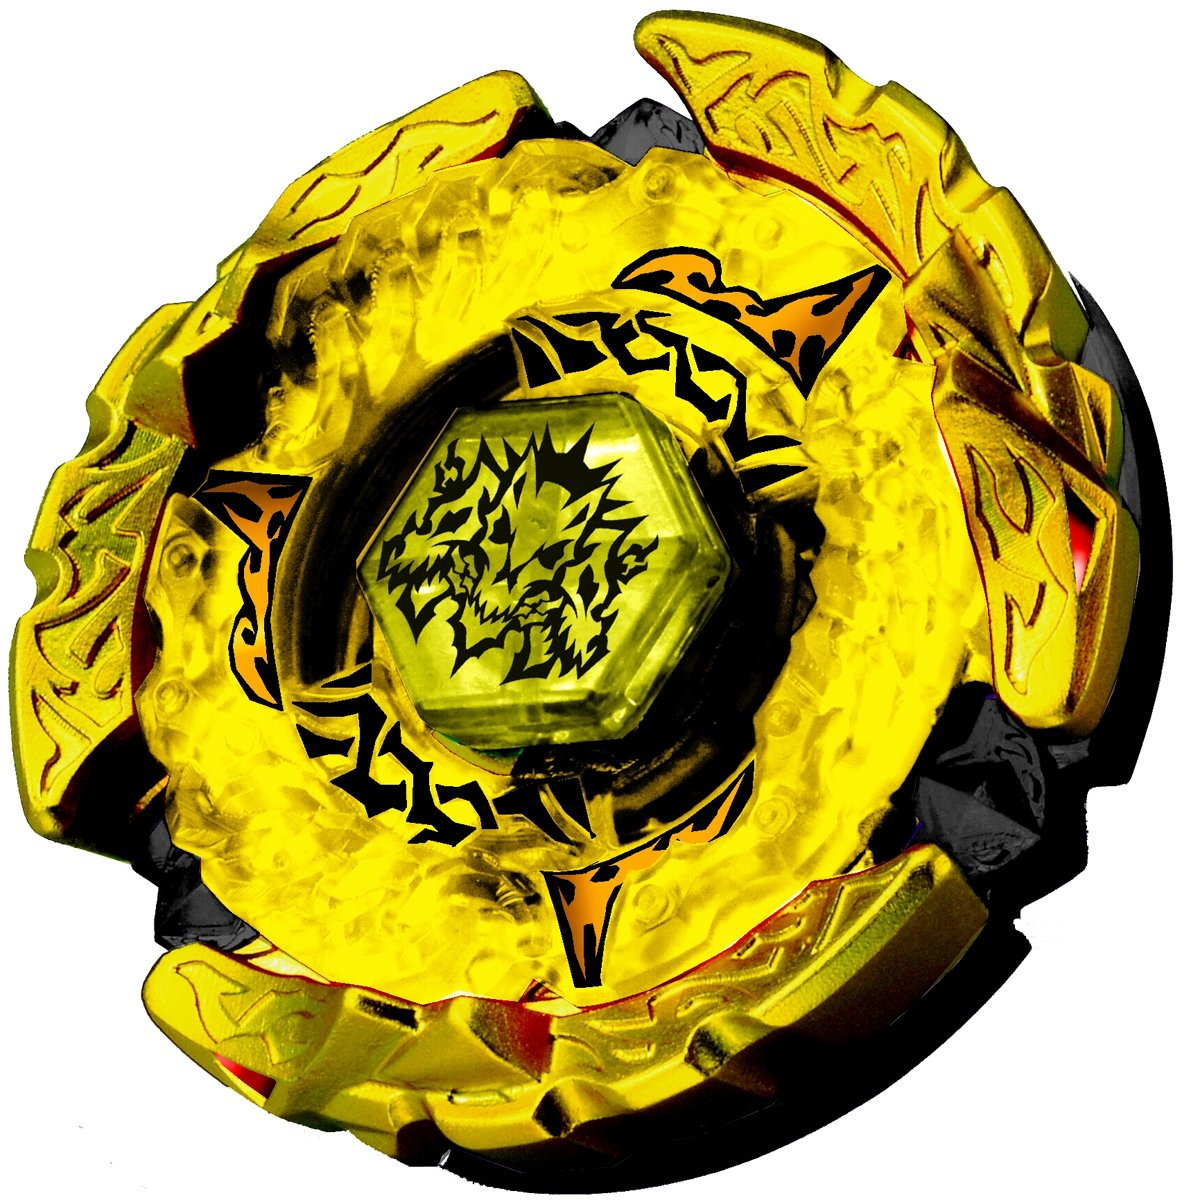 Top 10 Best Beyblade Toys in the World 2020 - Buyer's Guide 3